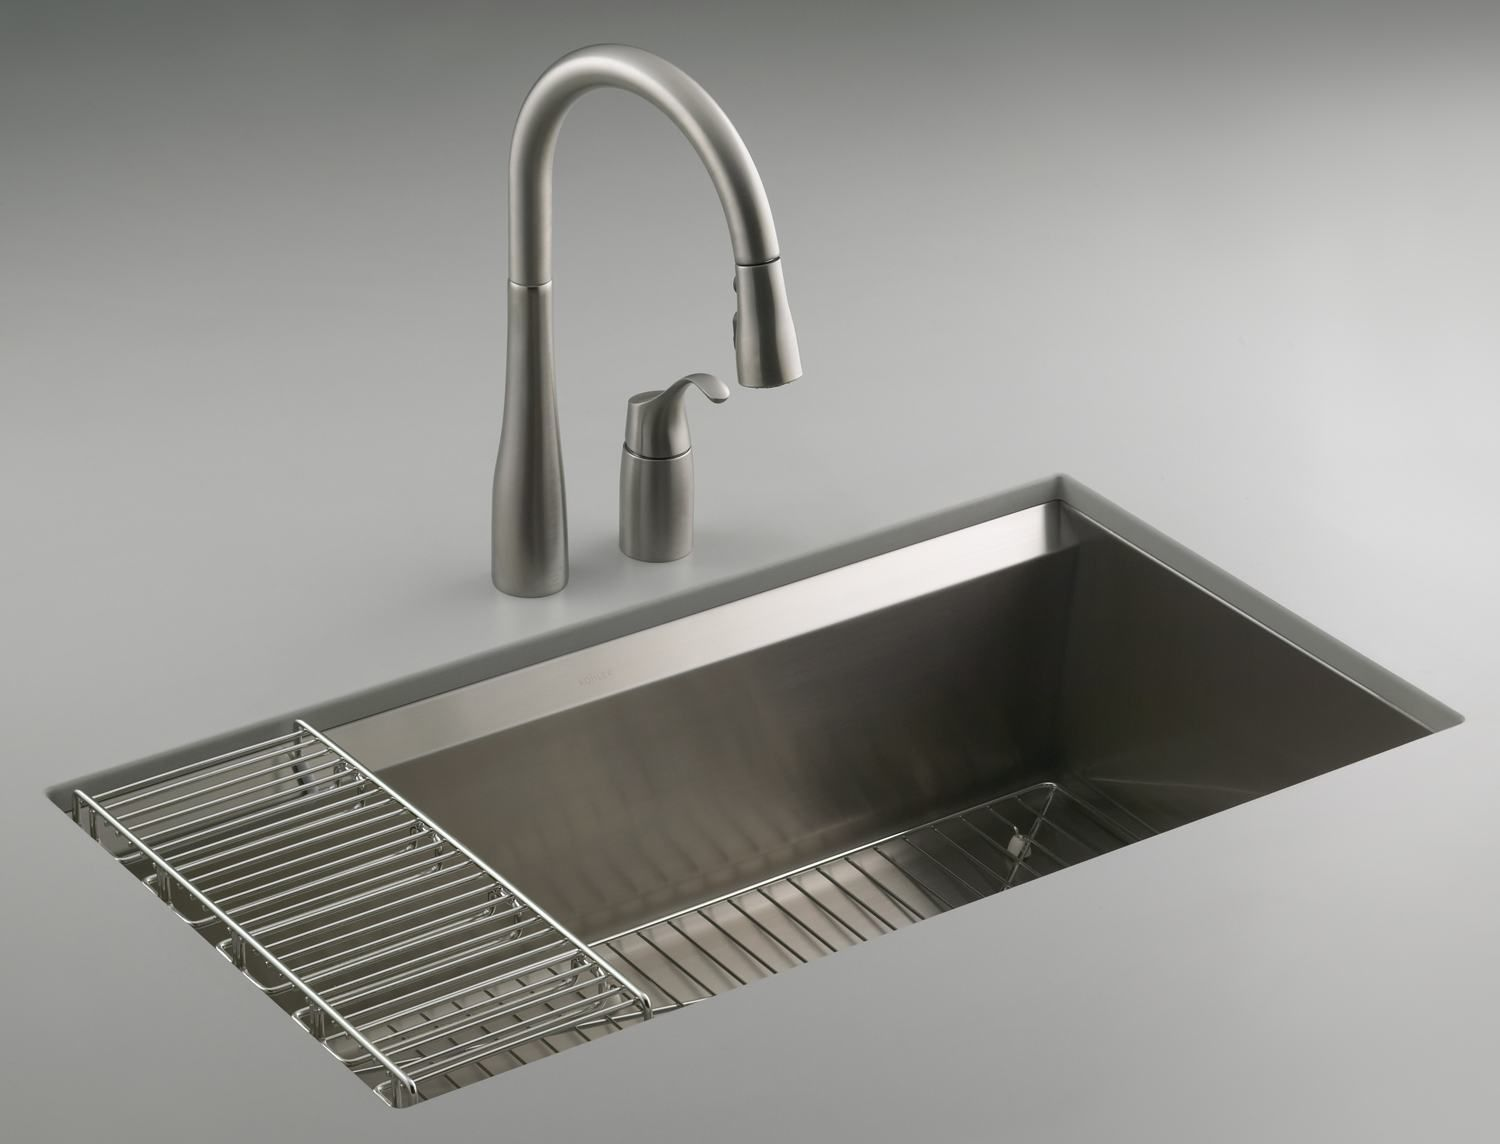 kitchen sink accessories for tap water that looks clean to the